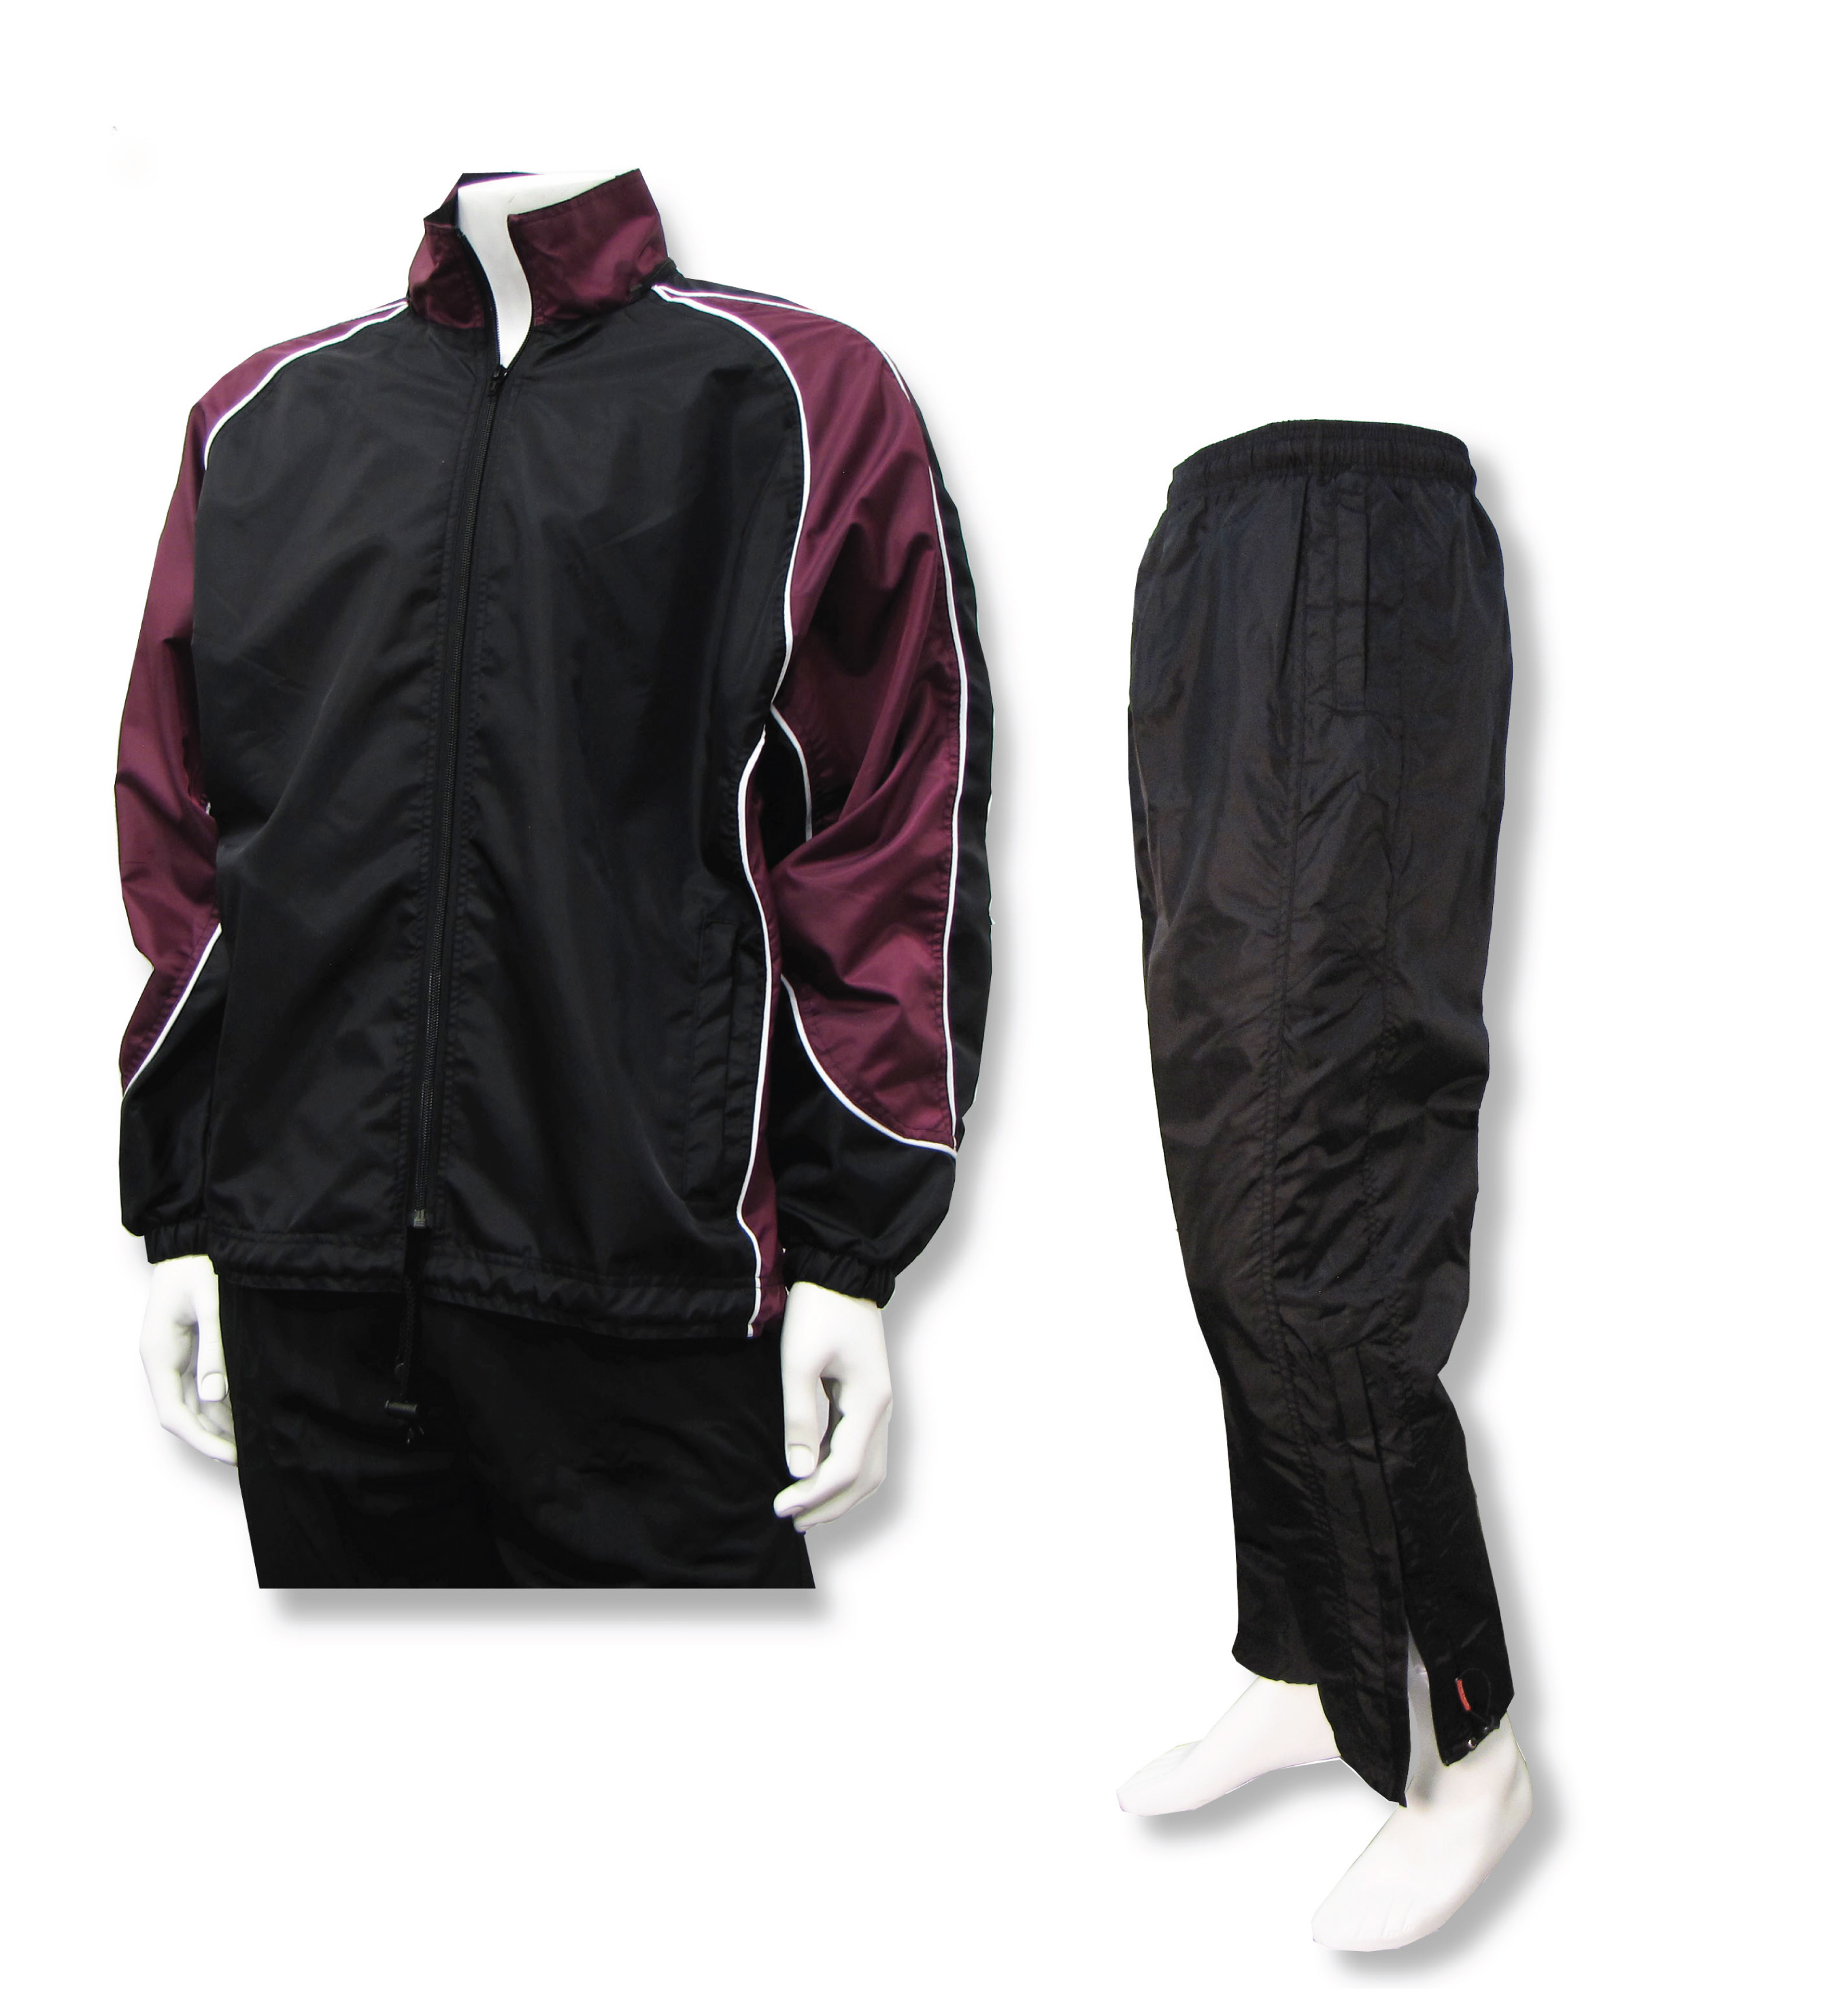 Water resistant warmup set in maroon/black by Code Four Athletics